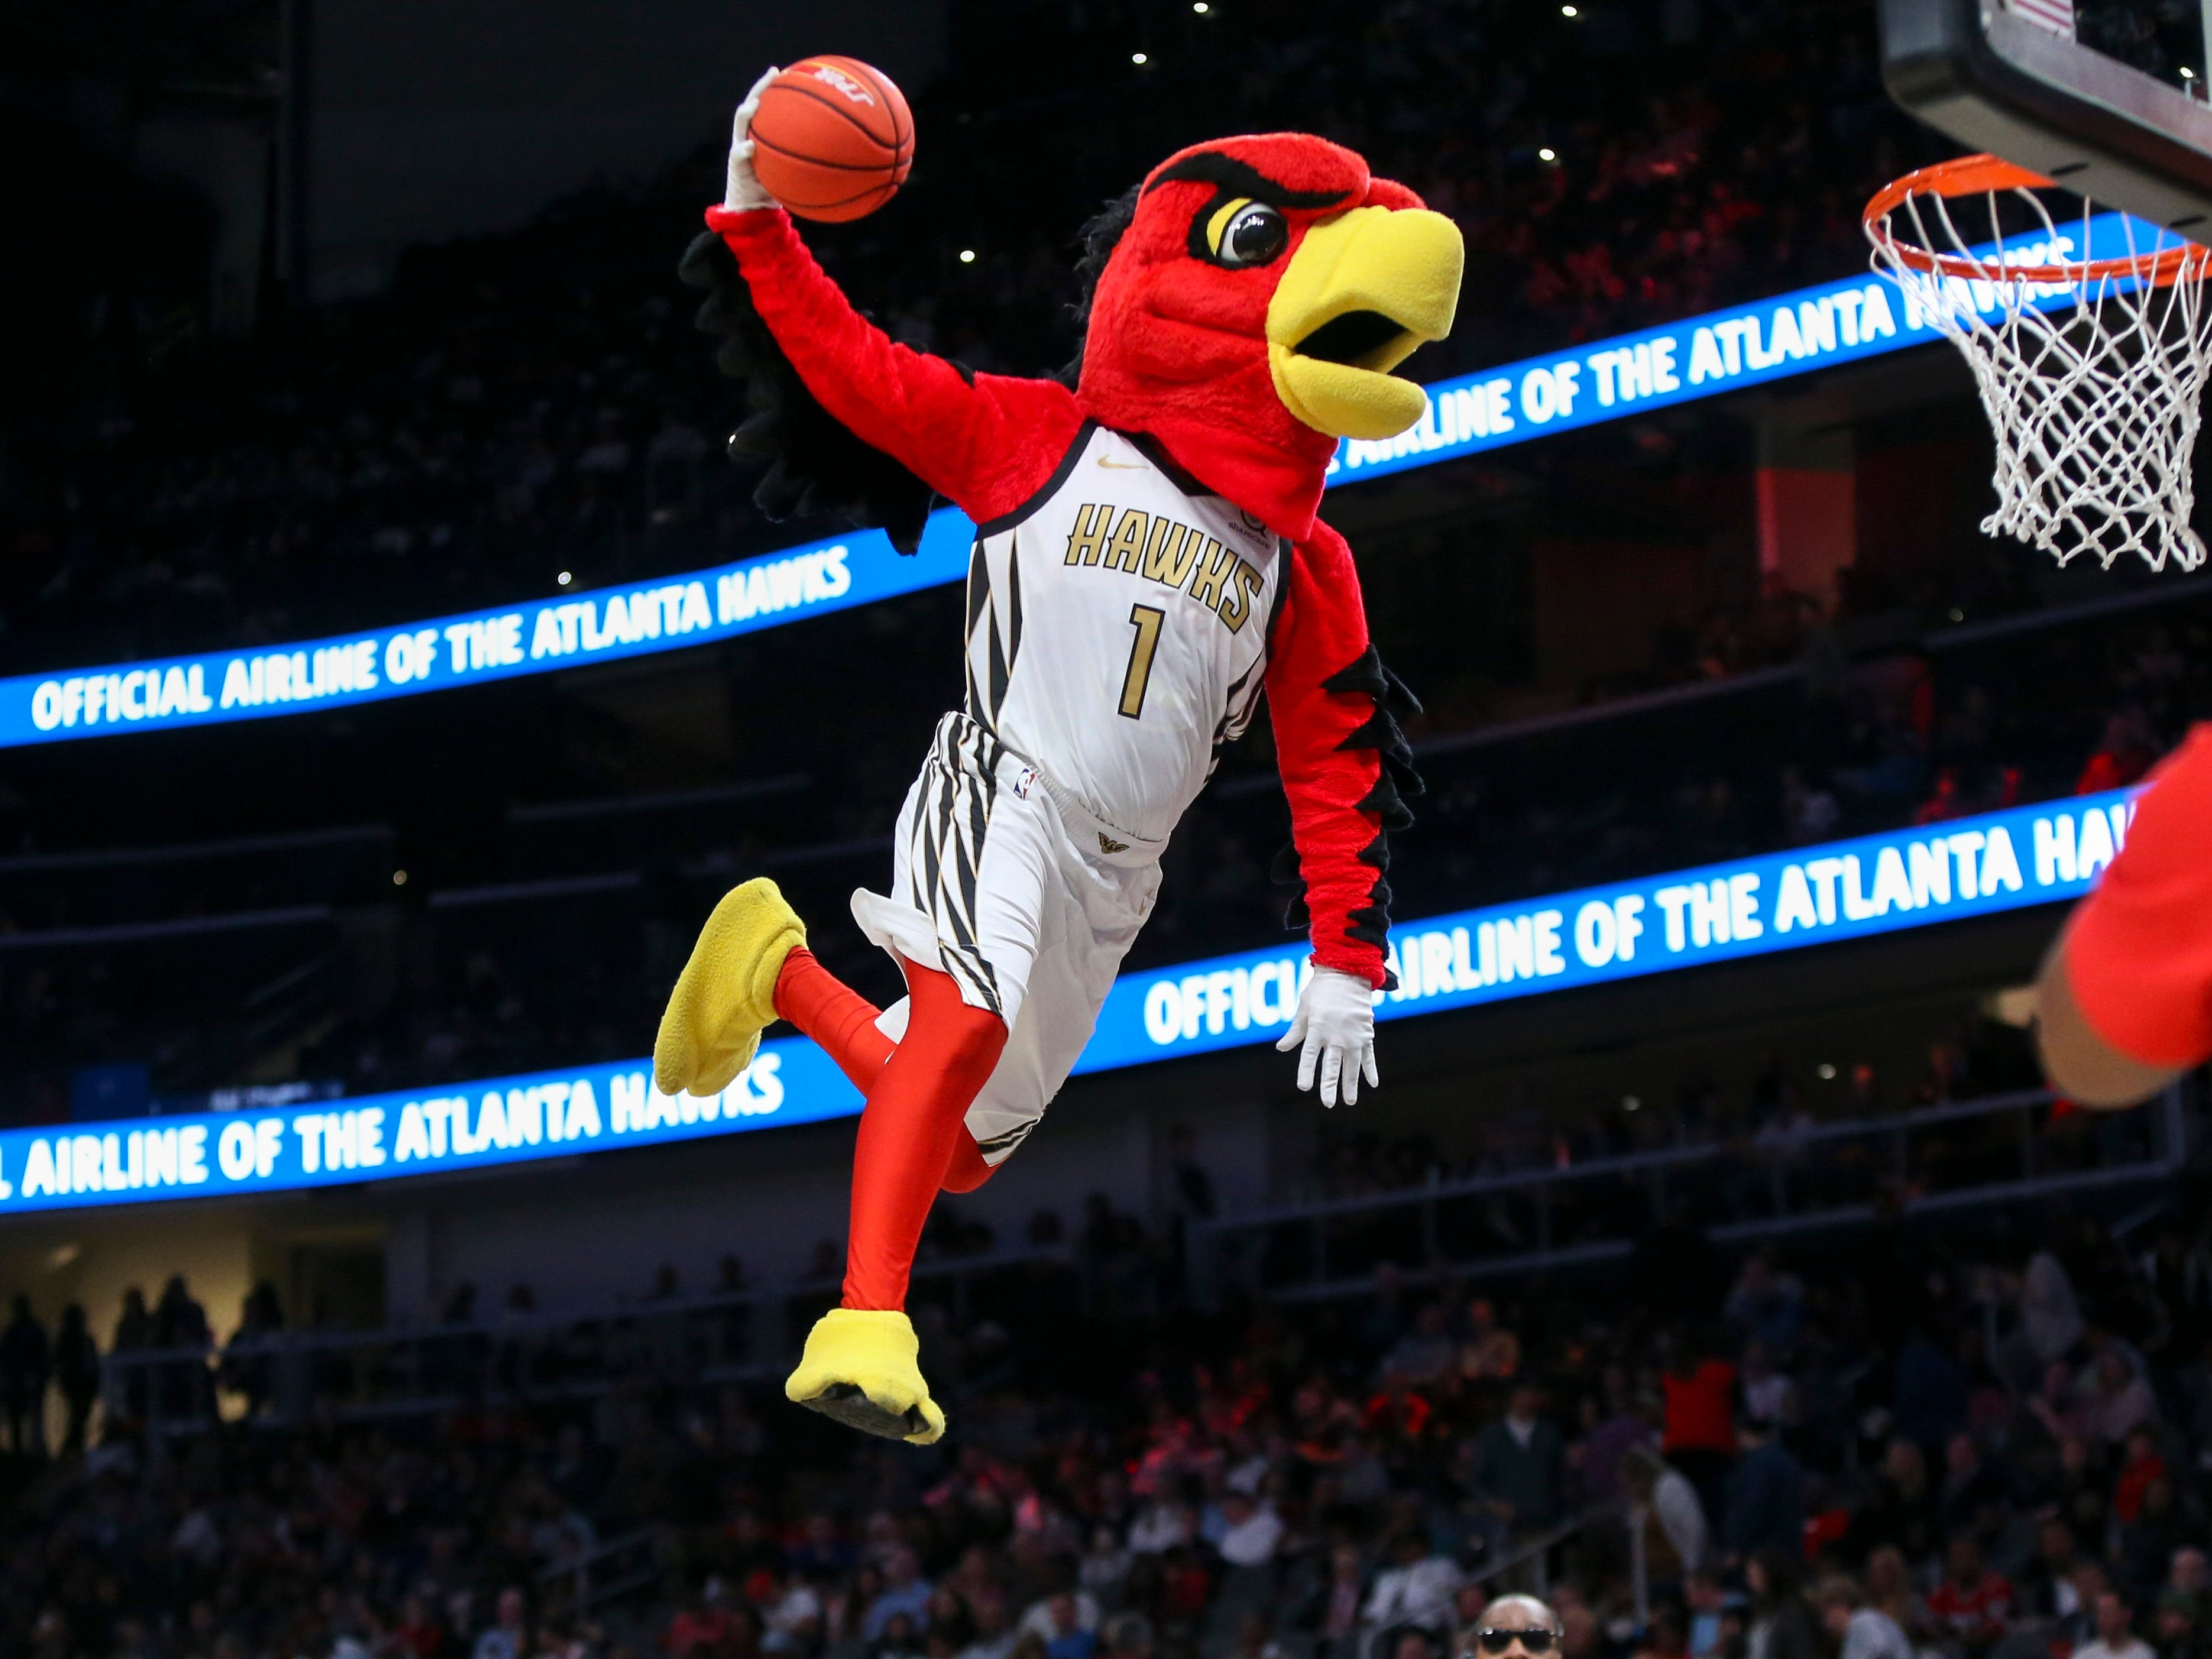 Nov. 9: Atlanta mascot Harry the Hawk entertains the crowd with some high-flying acrobatics.